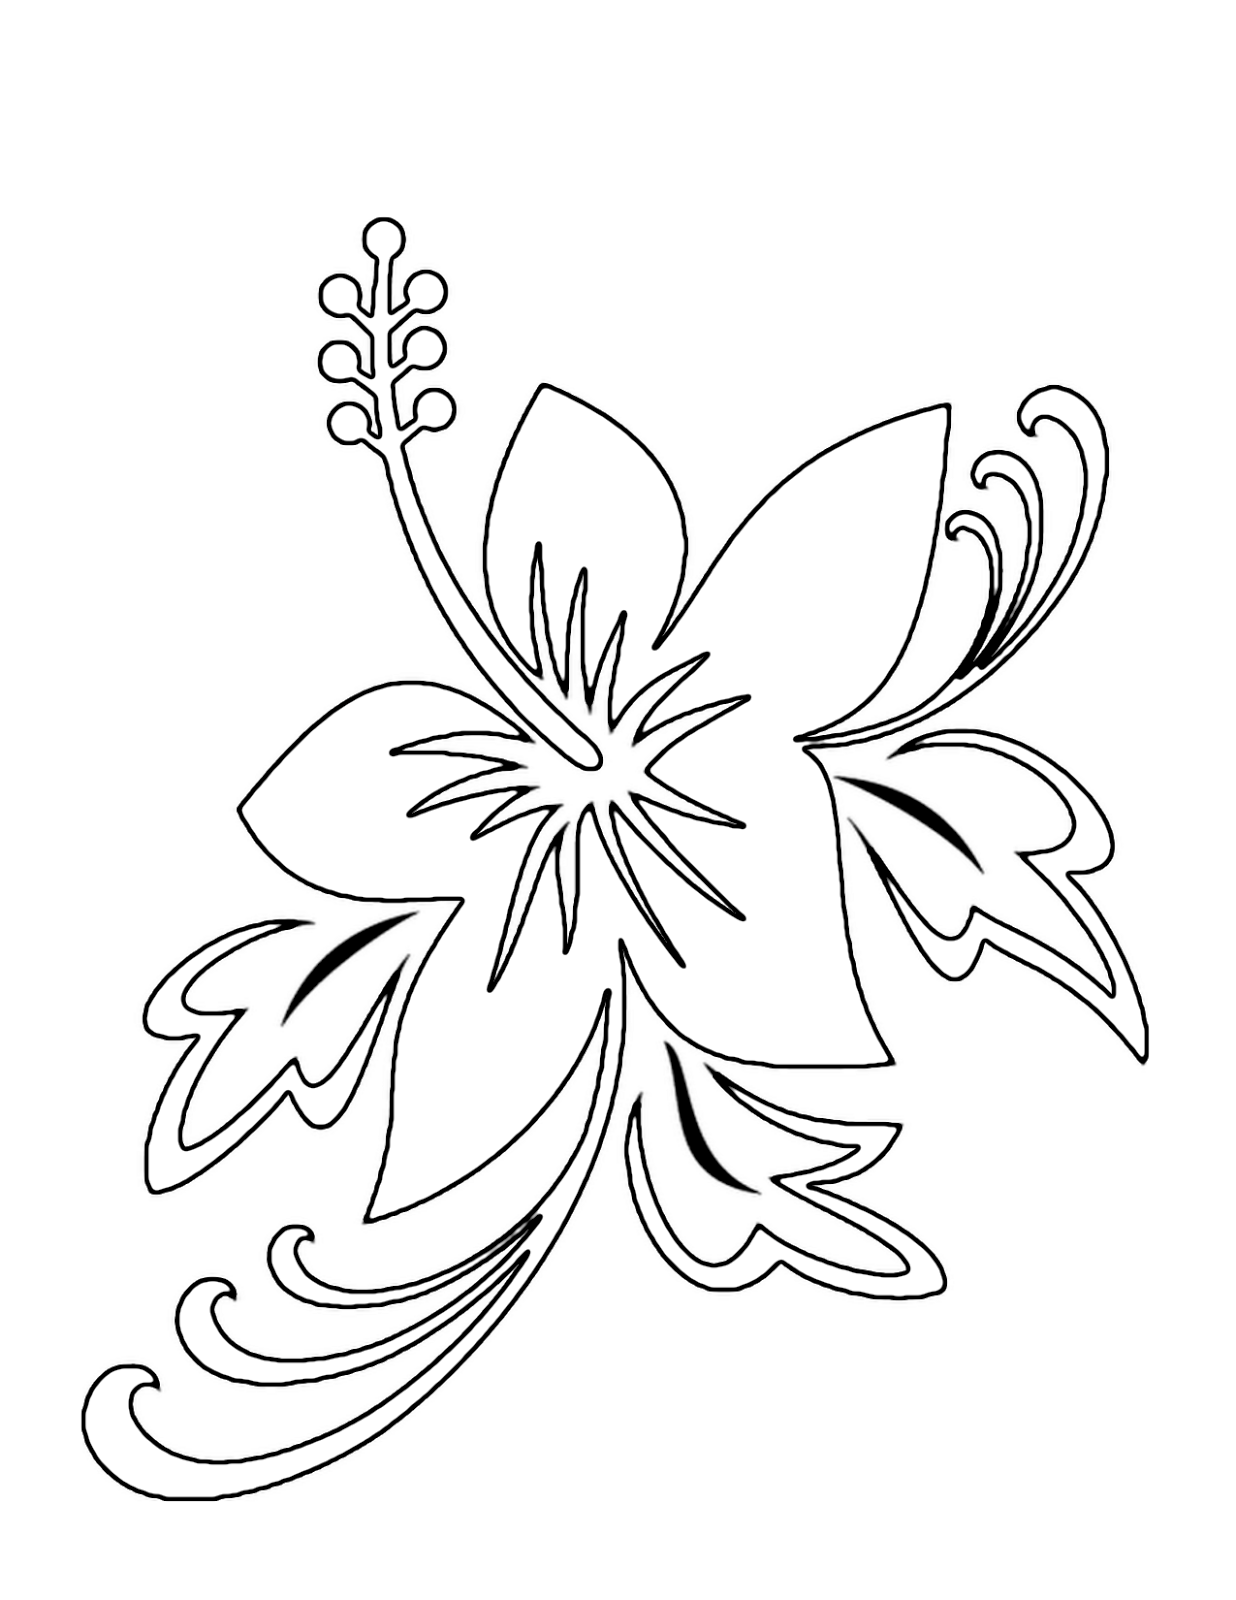 Coloring pages Flowers 110 coloring pages Edupics - coloring pages of flowers printable